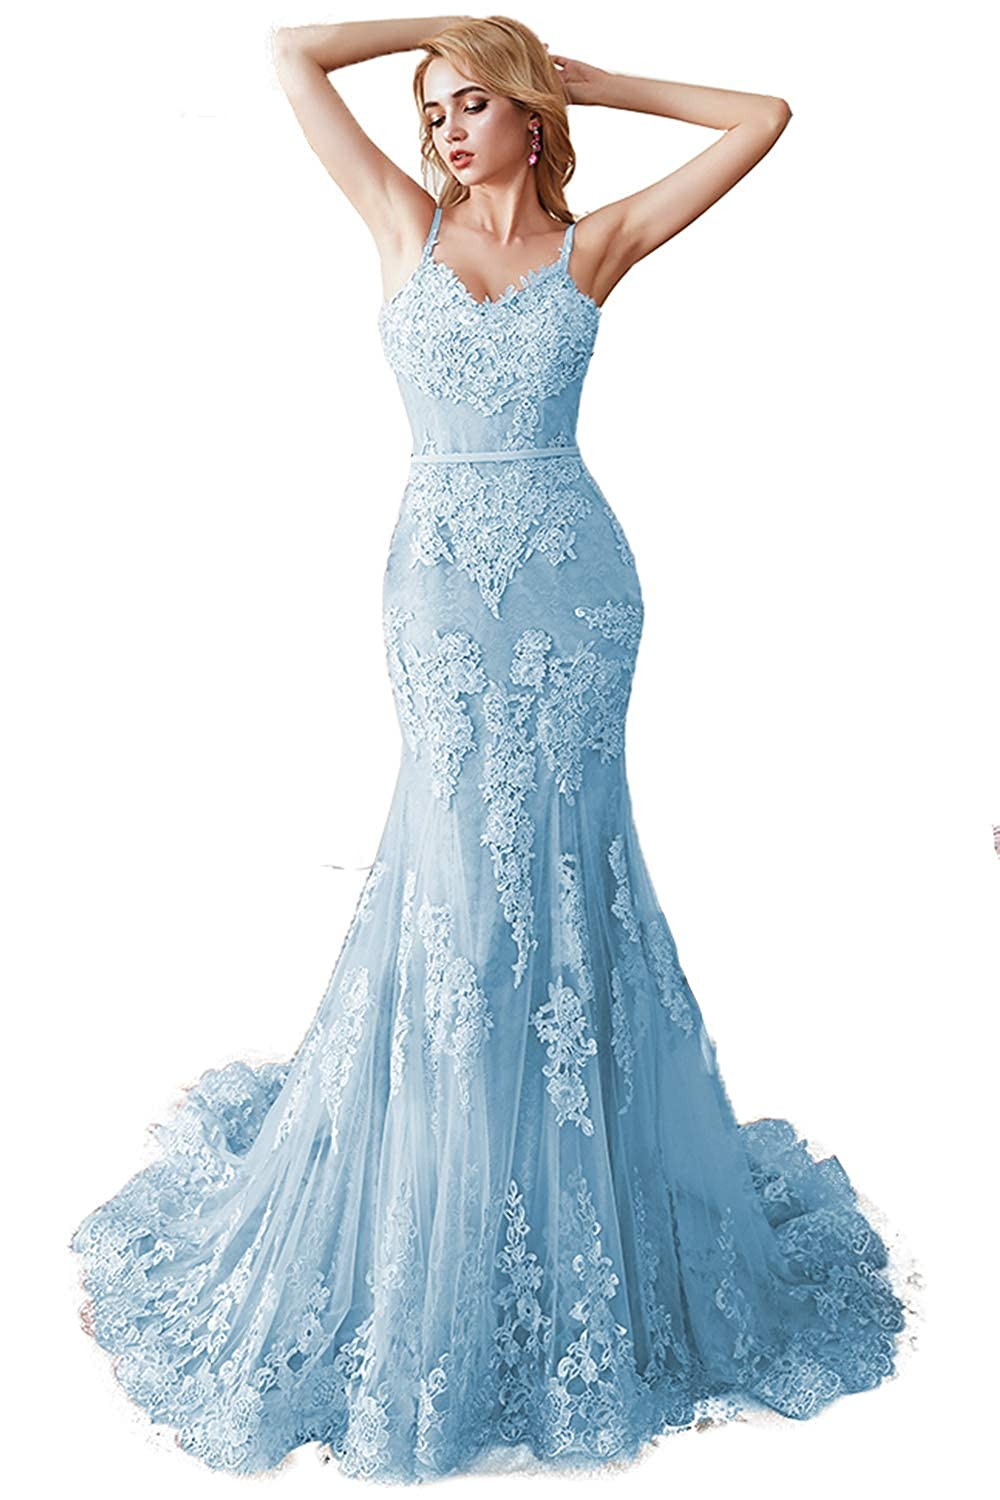 bluee Promworld Women's Spaghetti Strap Lace Applique Mermaid Prom Dress Tulle Formal Dress Evening Gowns